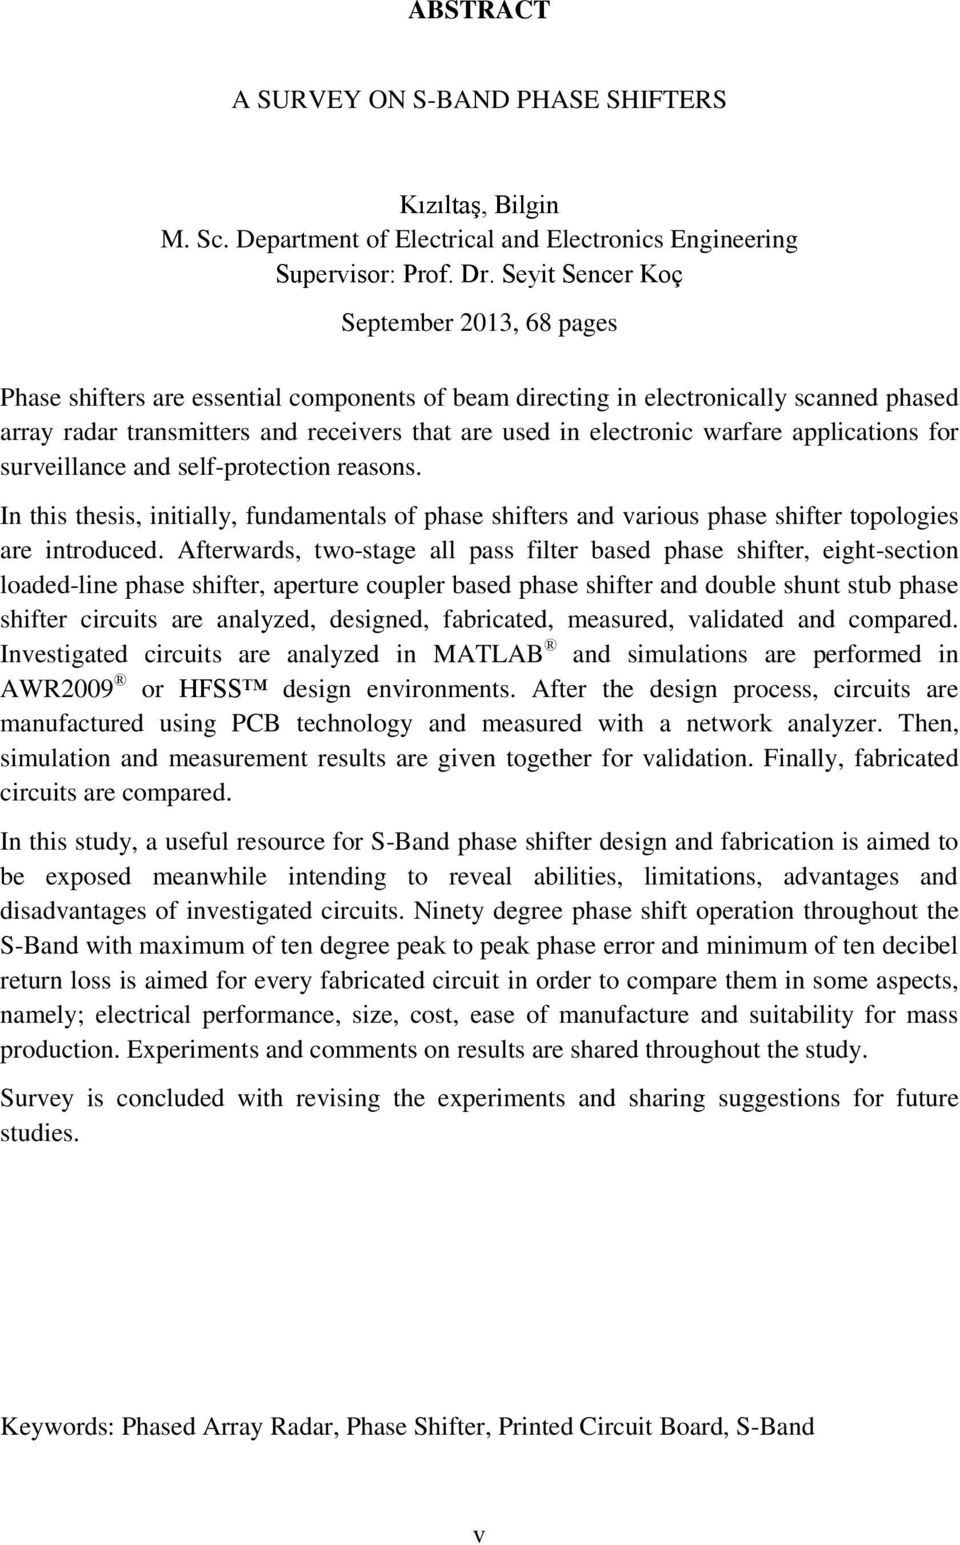 A Survey On S Band Phase Shifters Pdf Printed Circuit Board Assemblies Gt Radar Inc Warfare Applications For Surveillance And Self Protection Reasons In This Thesis Initially